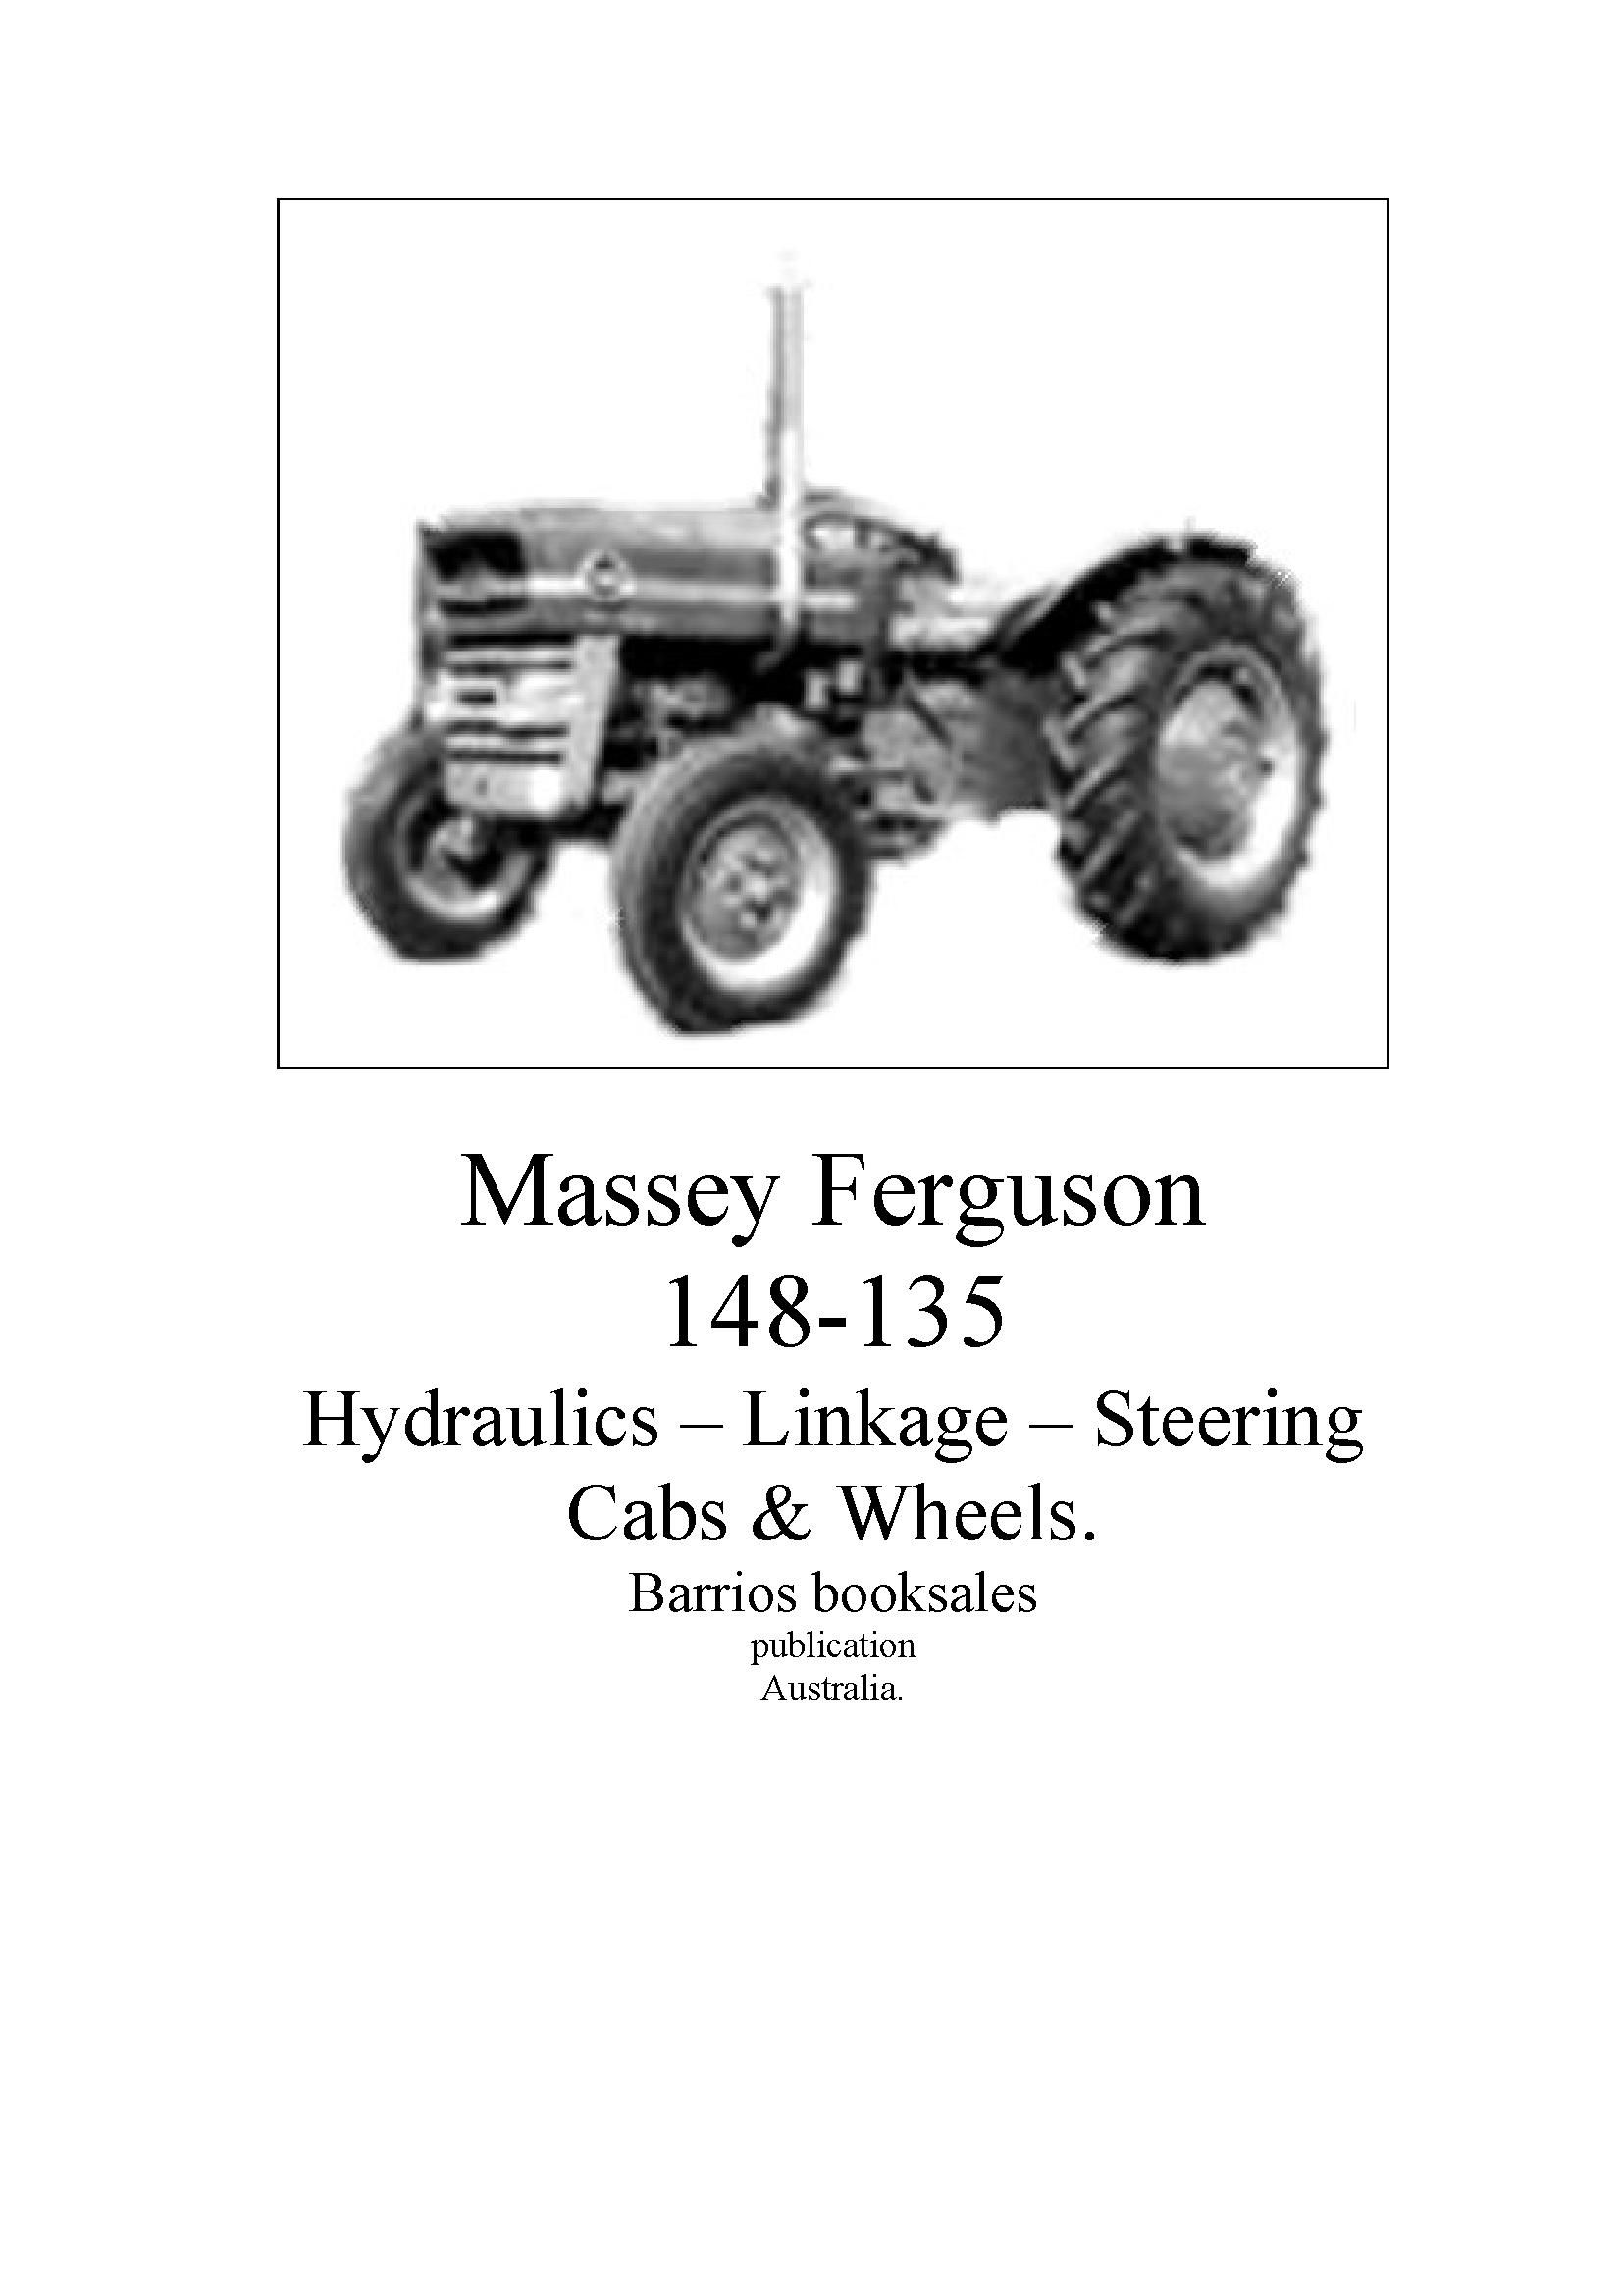 Pin by Tractor manuals dowunder on Ferguson Massey Ferguson manuals to  download | Pinterest